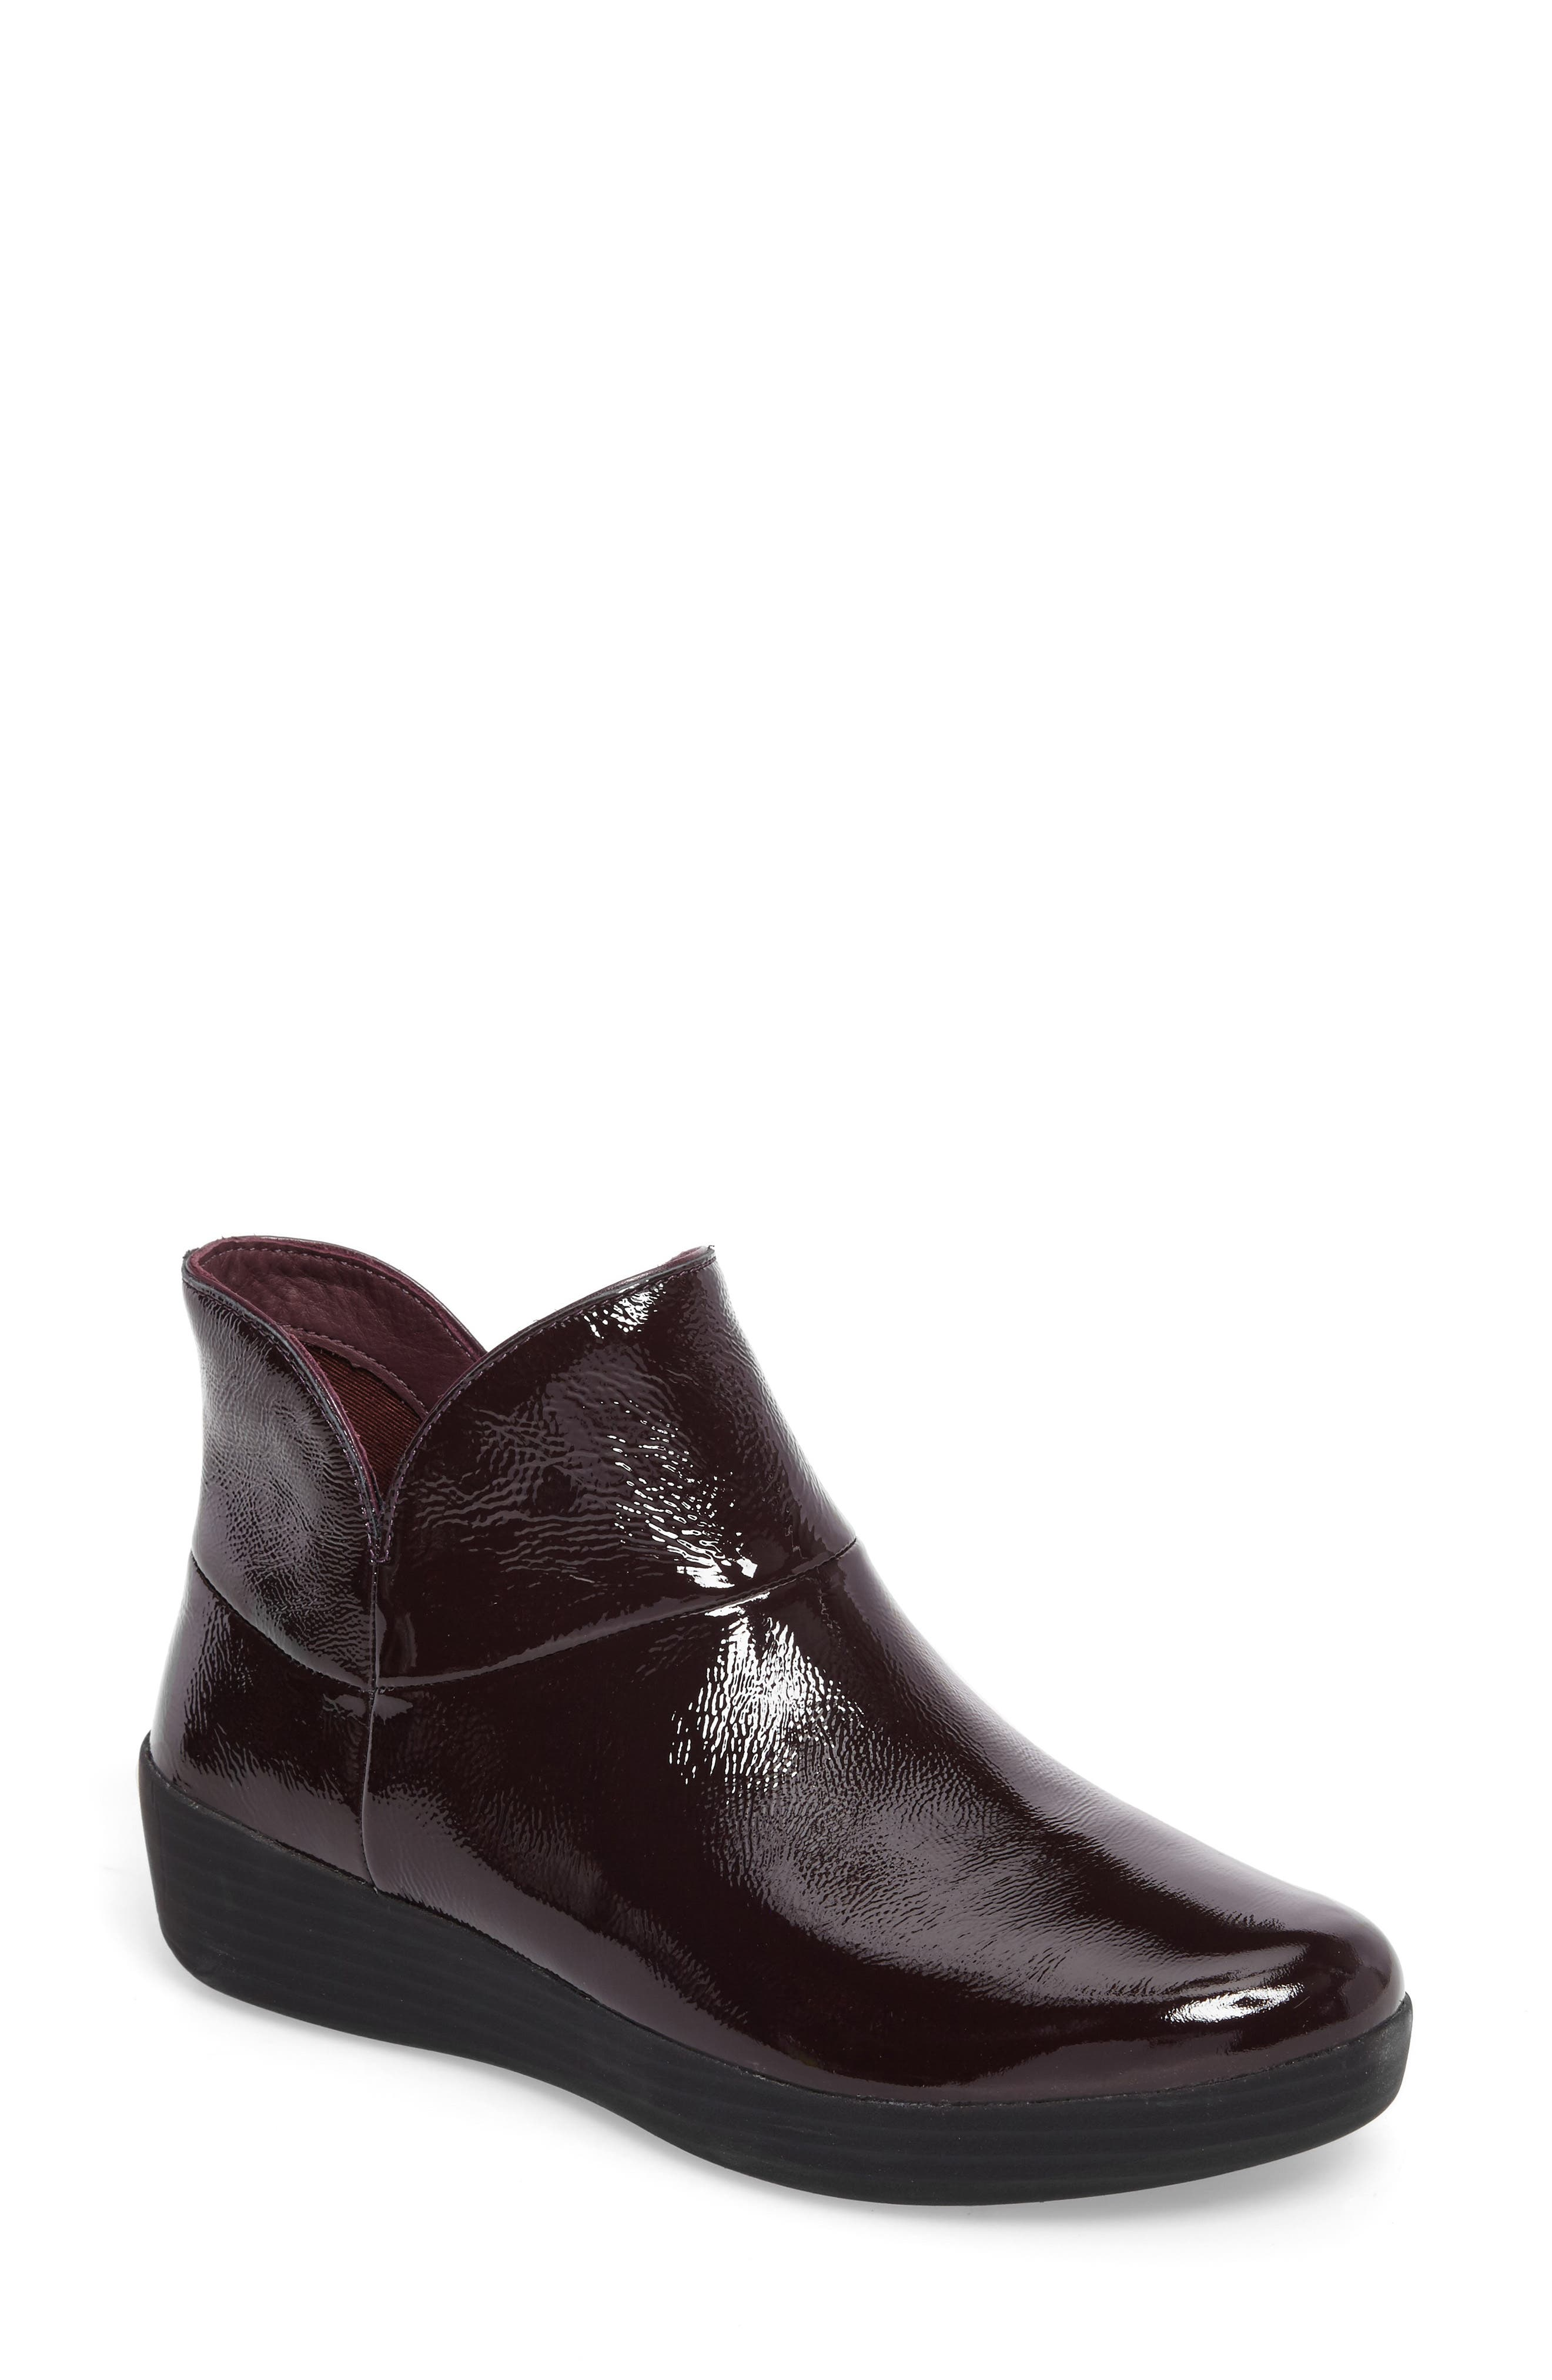 Supermod<sup>™</sup> II Ankle Boot,                         Main,                         color, 547